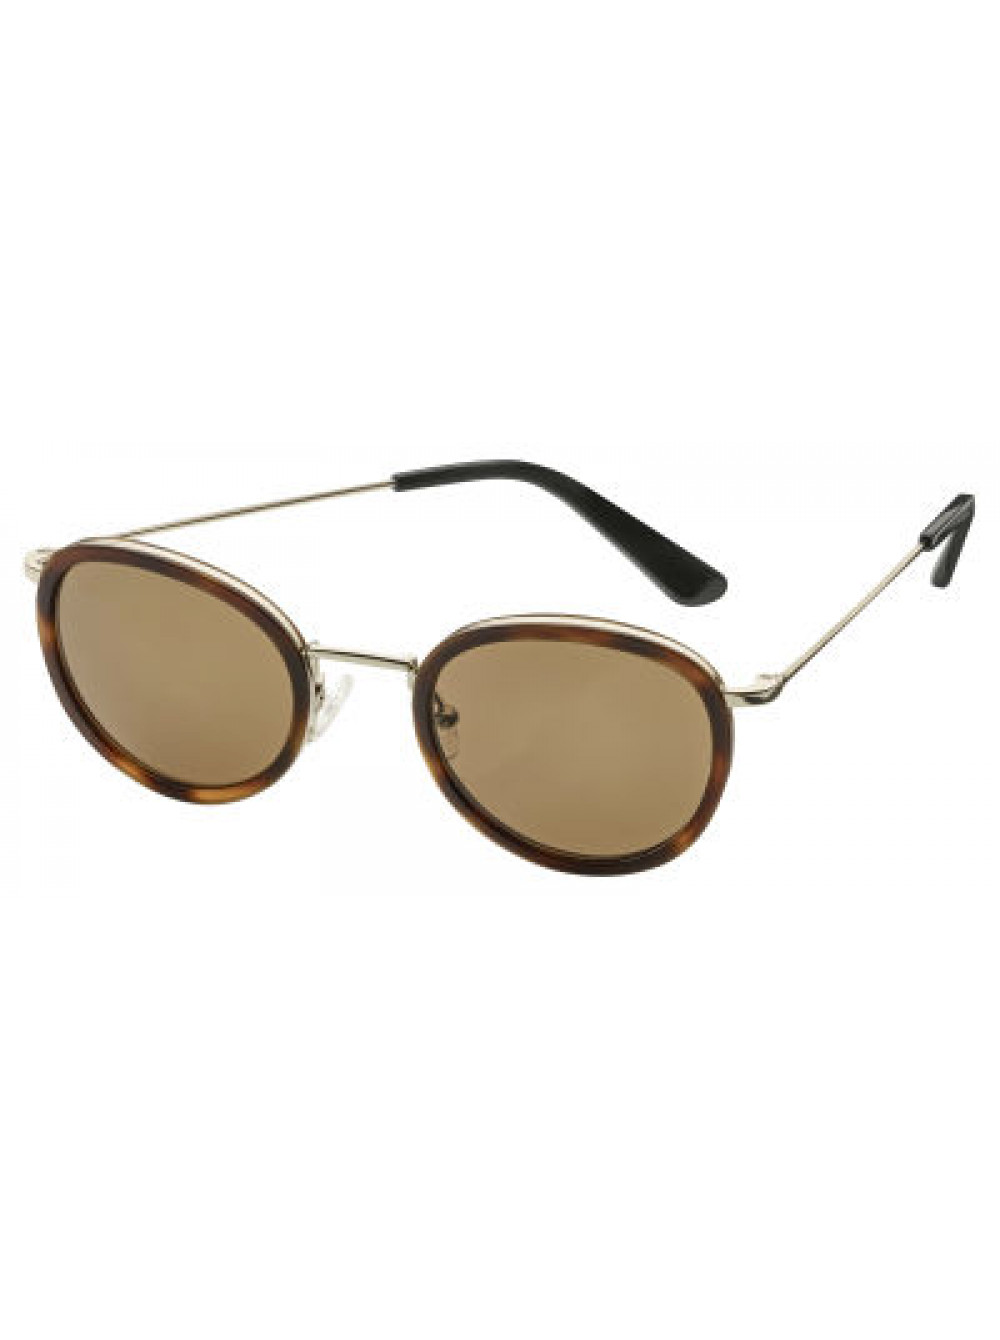 Женские солнцезащитные очки Mercedes-Benz Women's Sunglasses, Lifestyle, havana brown / gold